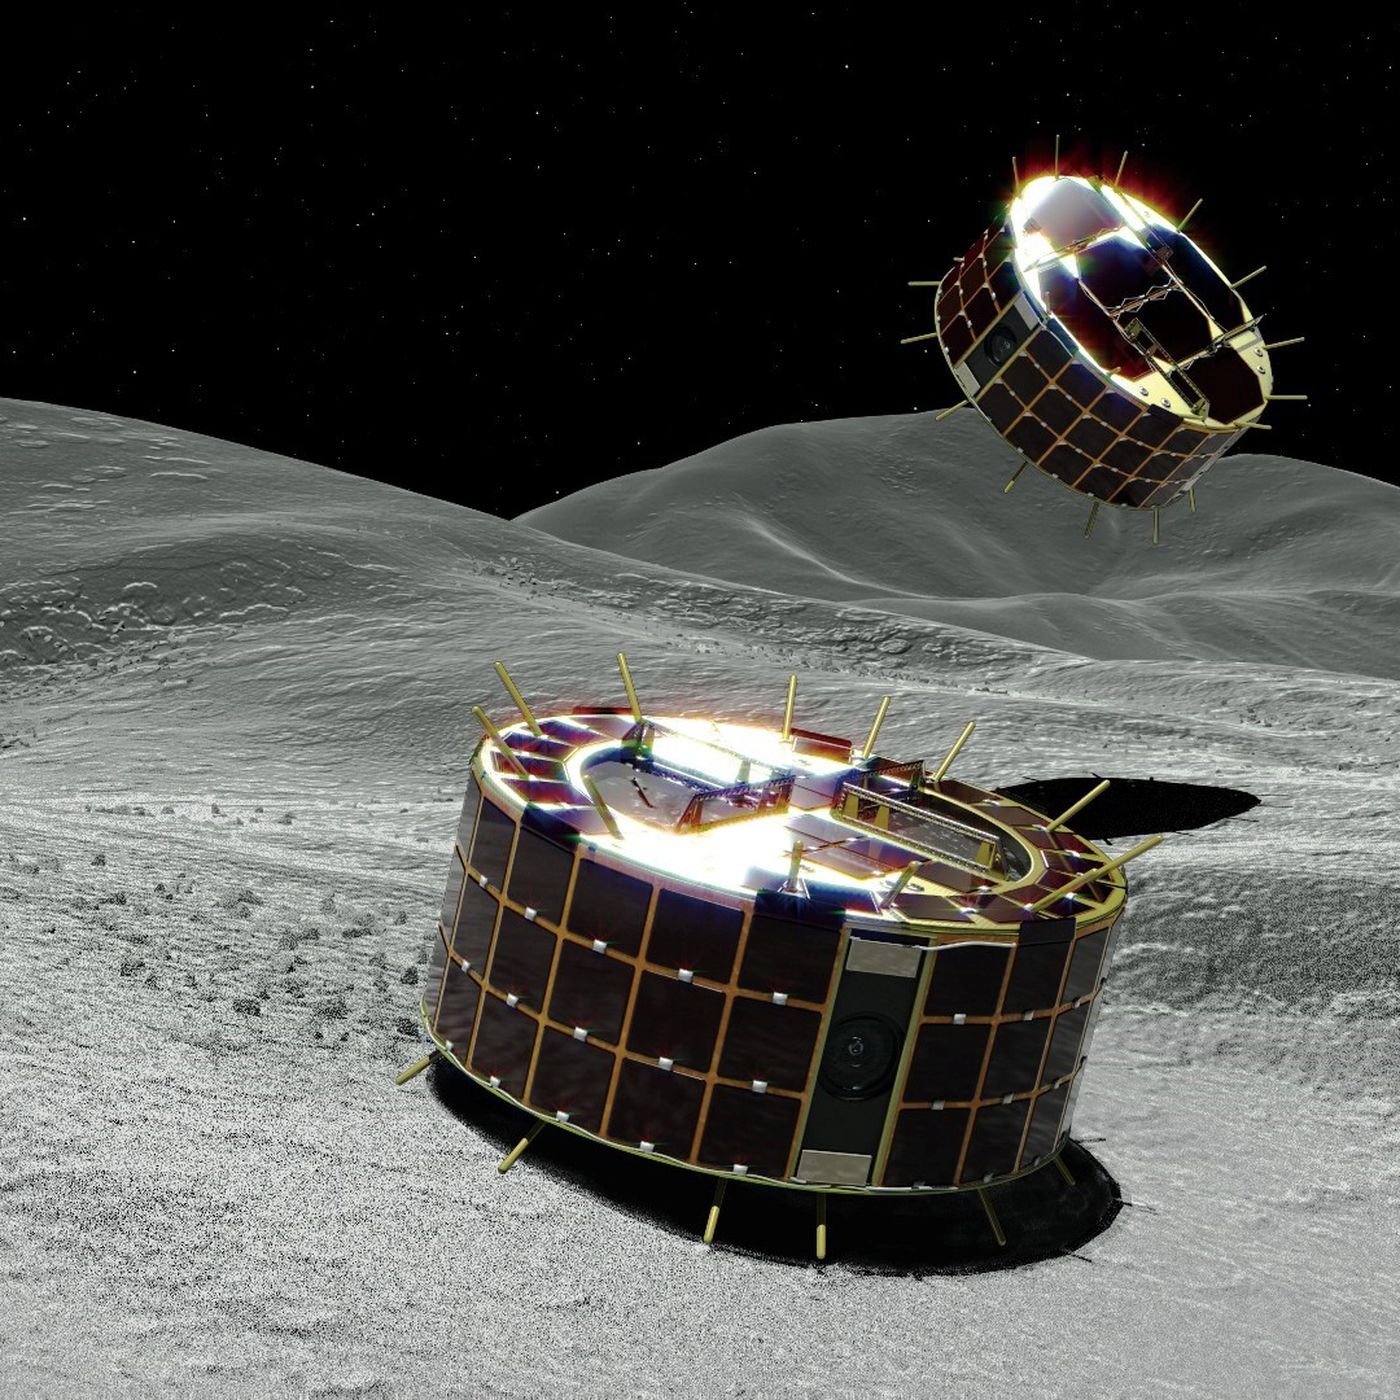 theverge.com - Loren Grush - A Japanese spacecraft just threw two small rovers at an asteroid